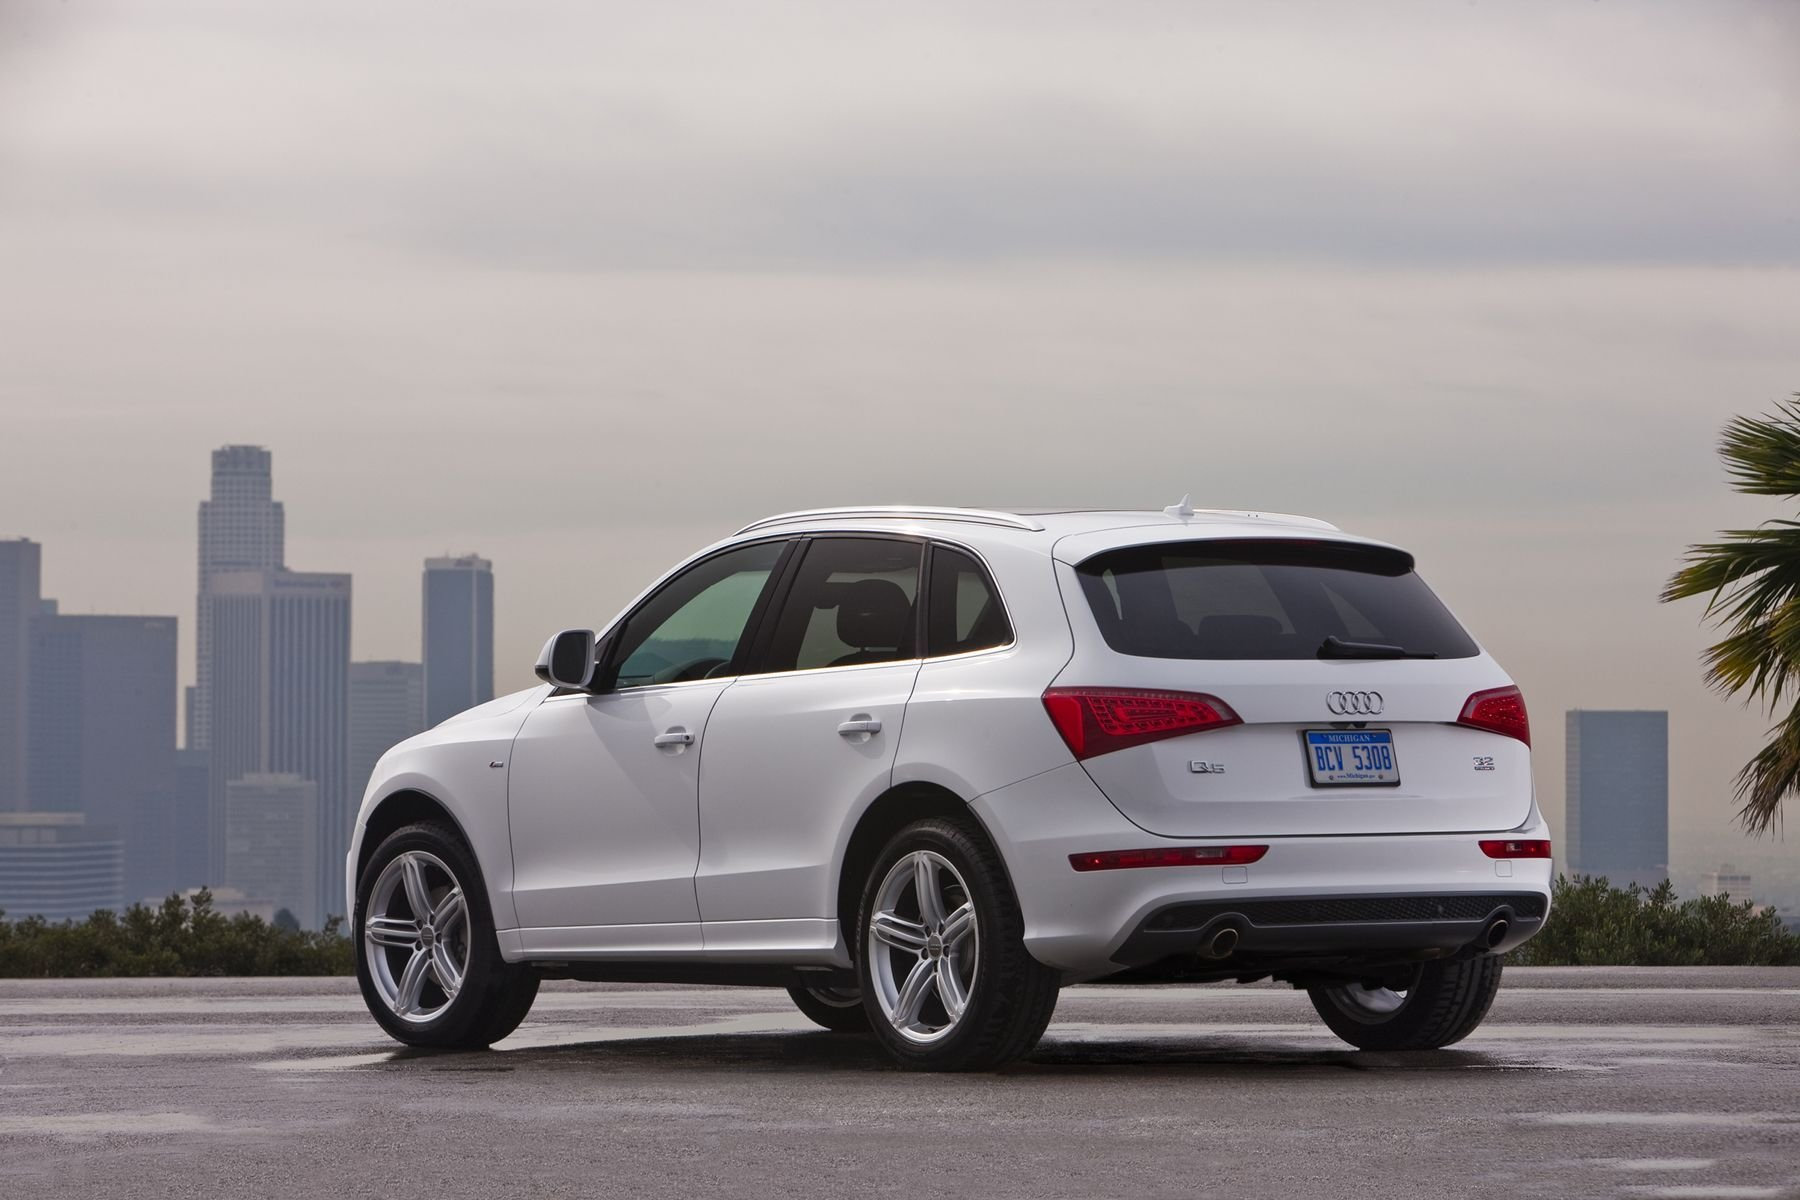 Latest Audi Q5 Sline Things To Splurge On Audi Audi Cars Cars Free Download